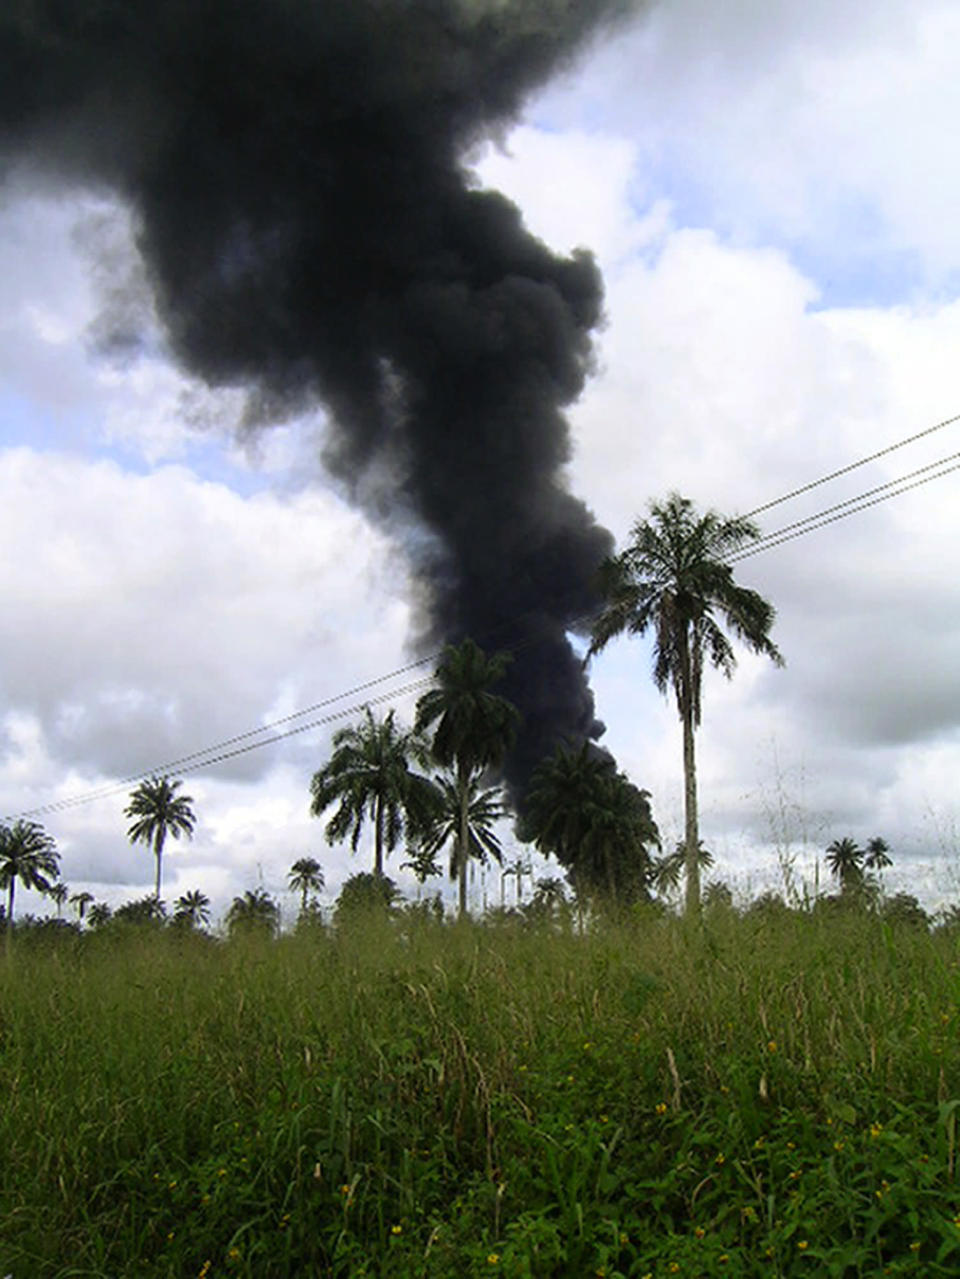 FILE - In this file photo dated Tuesday, Oct. 12, 2004, smoke rises from an oil pipeline fire near the village of Goi in Nigeria. A Dutch appeals court Friday Feb. 12, 2021, has ordered energy giant Shell's Nigerian subsidiary to compensate farmers in two villages including Goi for damage to their land caused by a pair of oil leaks more than 15 years ago. (AP Photo)